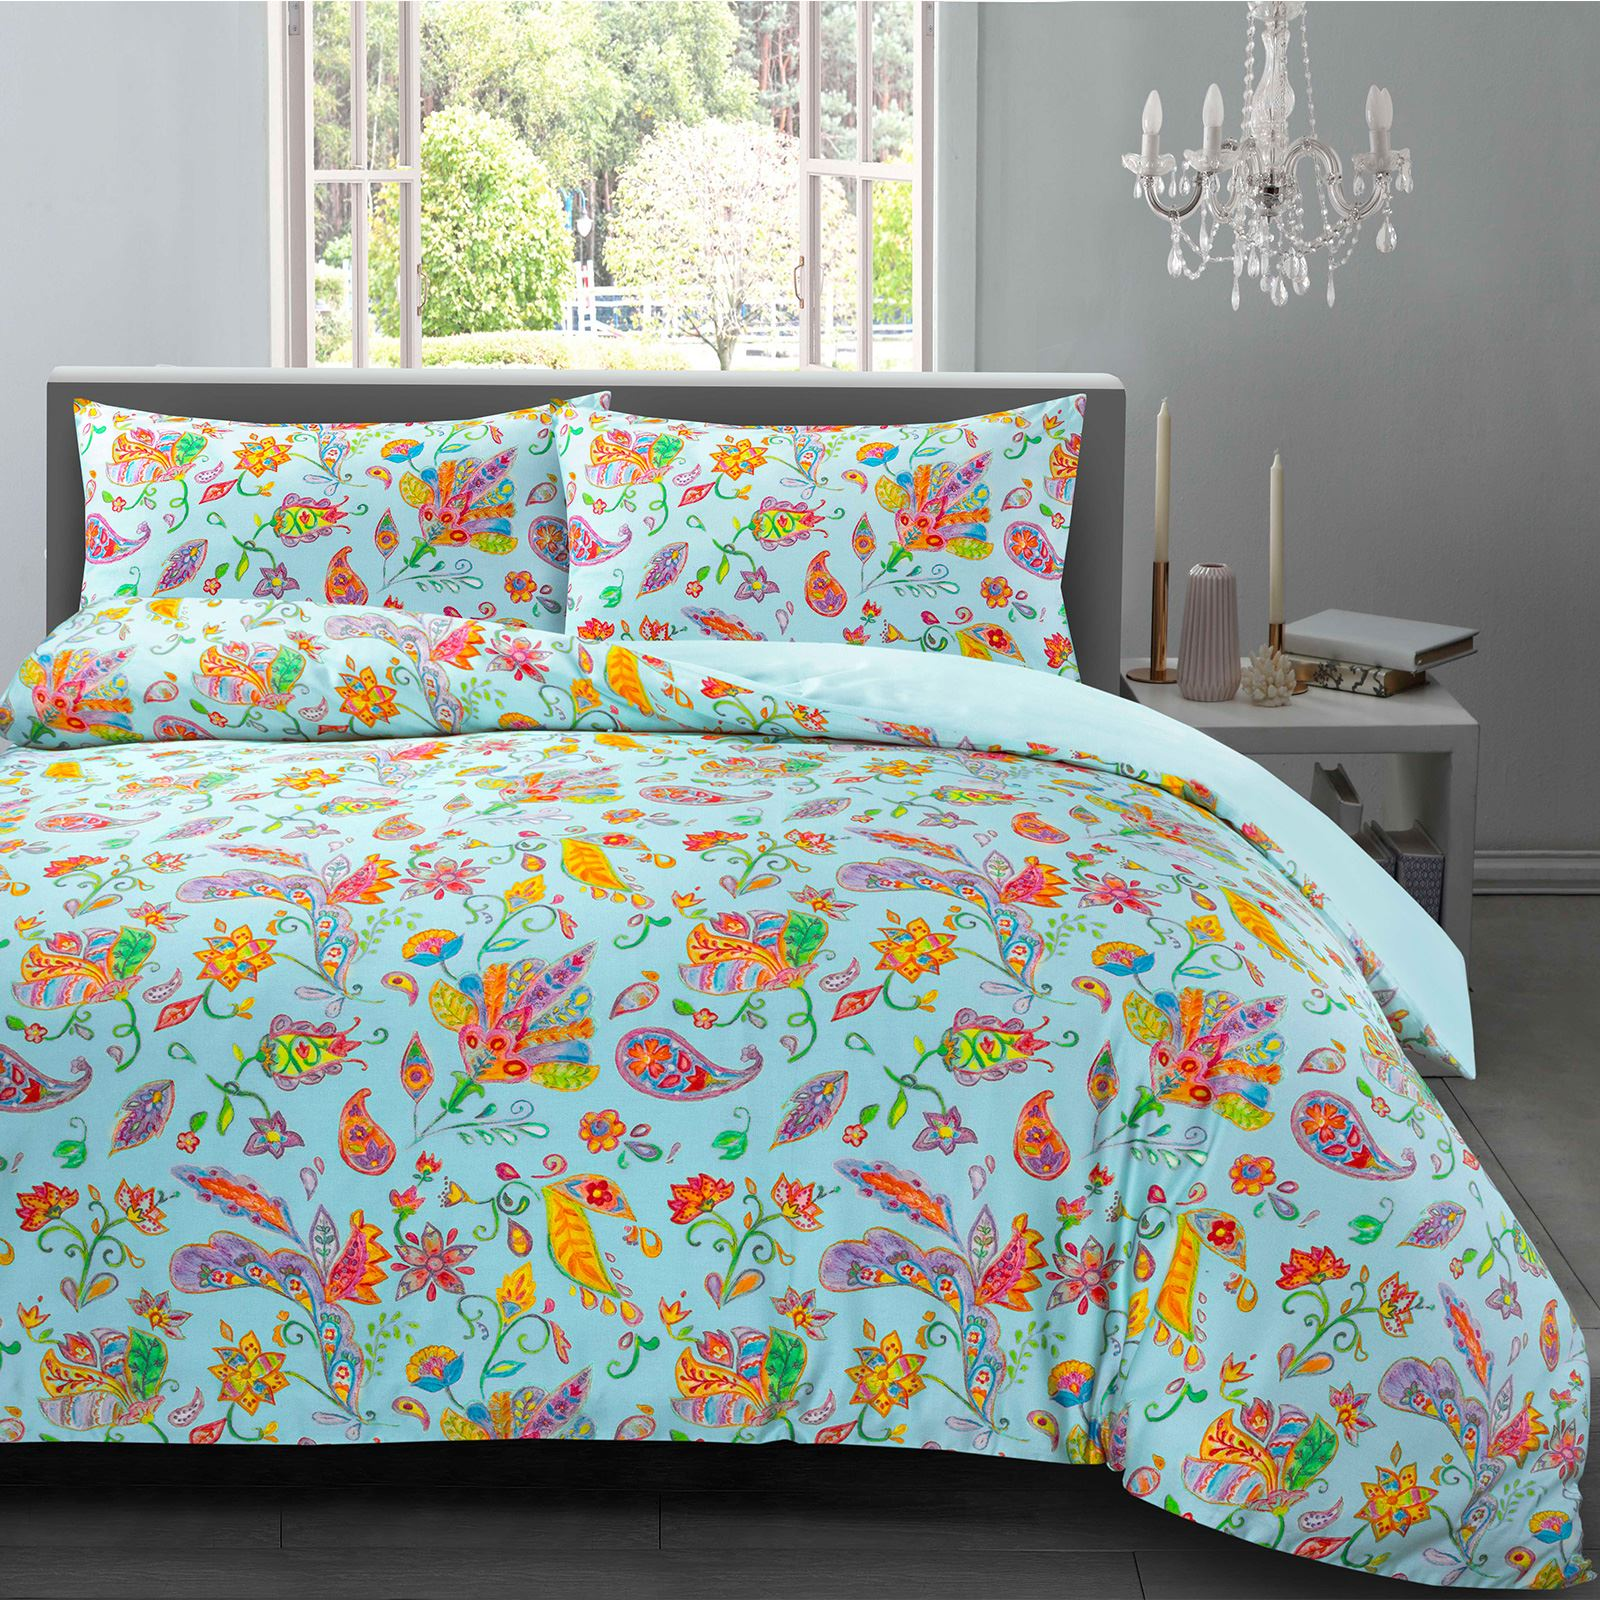 Gemma Hotel Quality Watercolour Paisley 100/%Cotton Sateen Quilt Duvet Cover Set